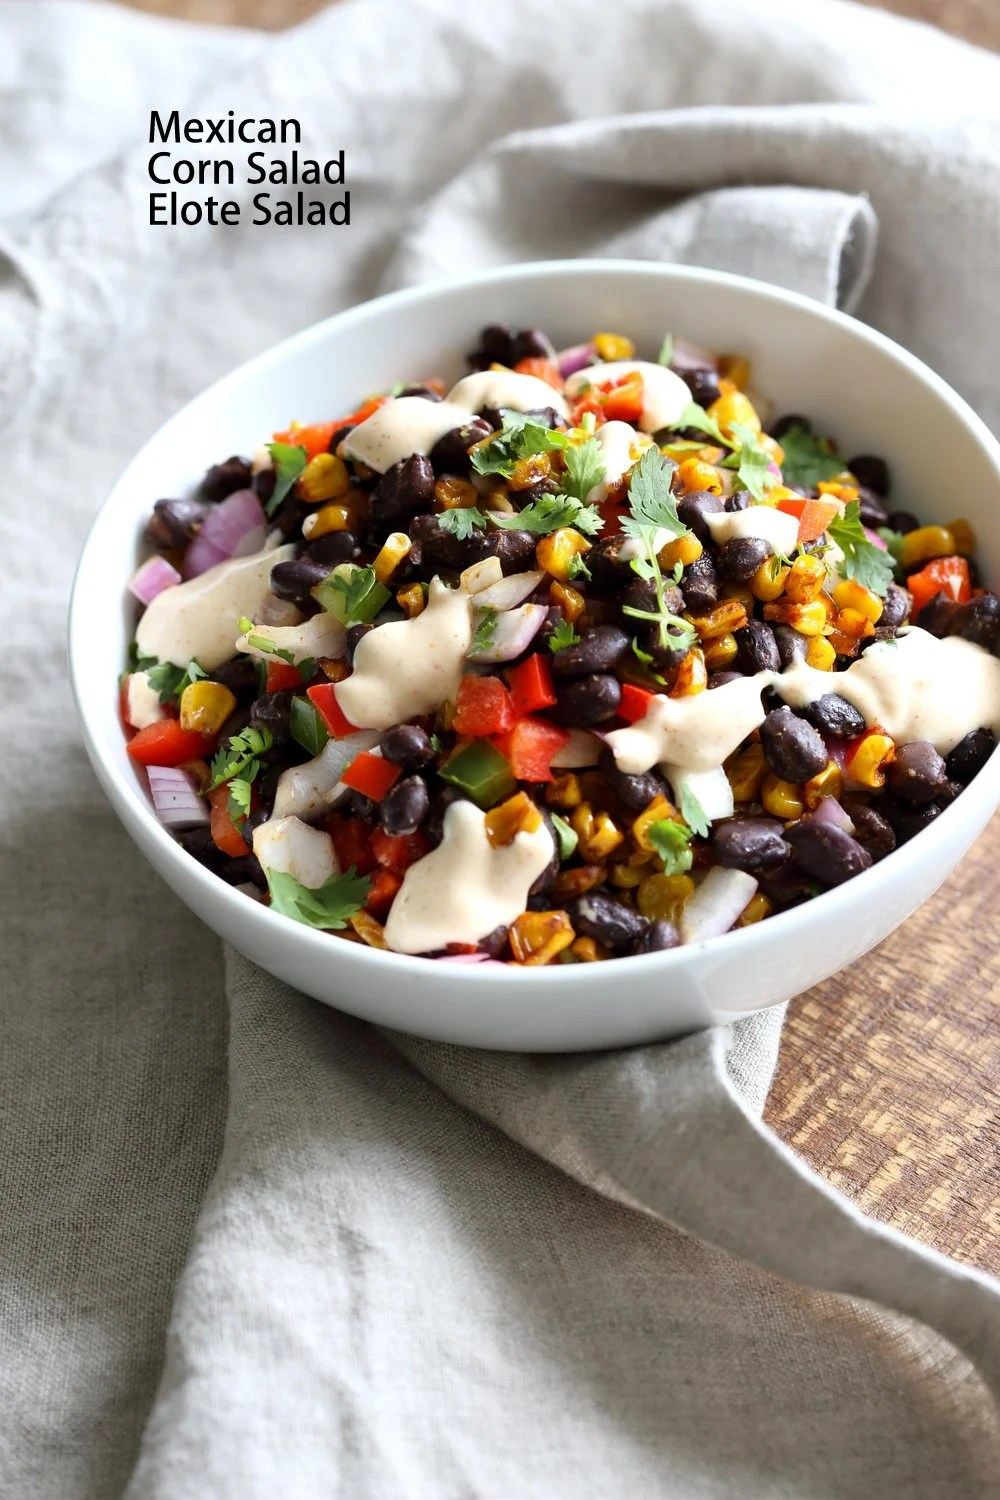 Mexican street corn salad in a white bowl with grey napkin